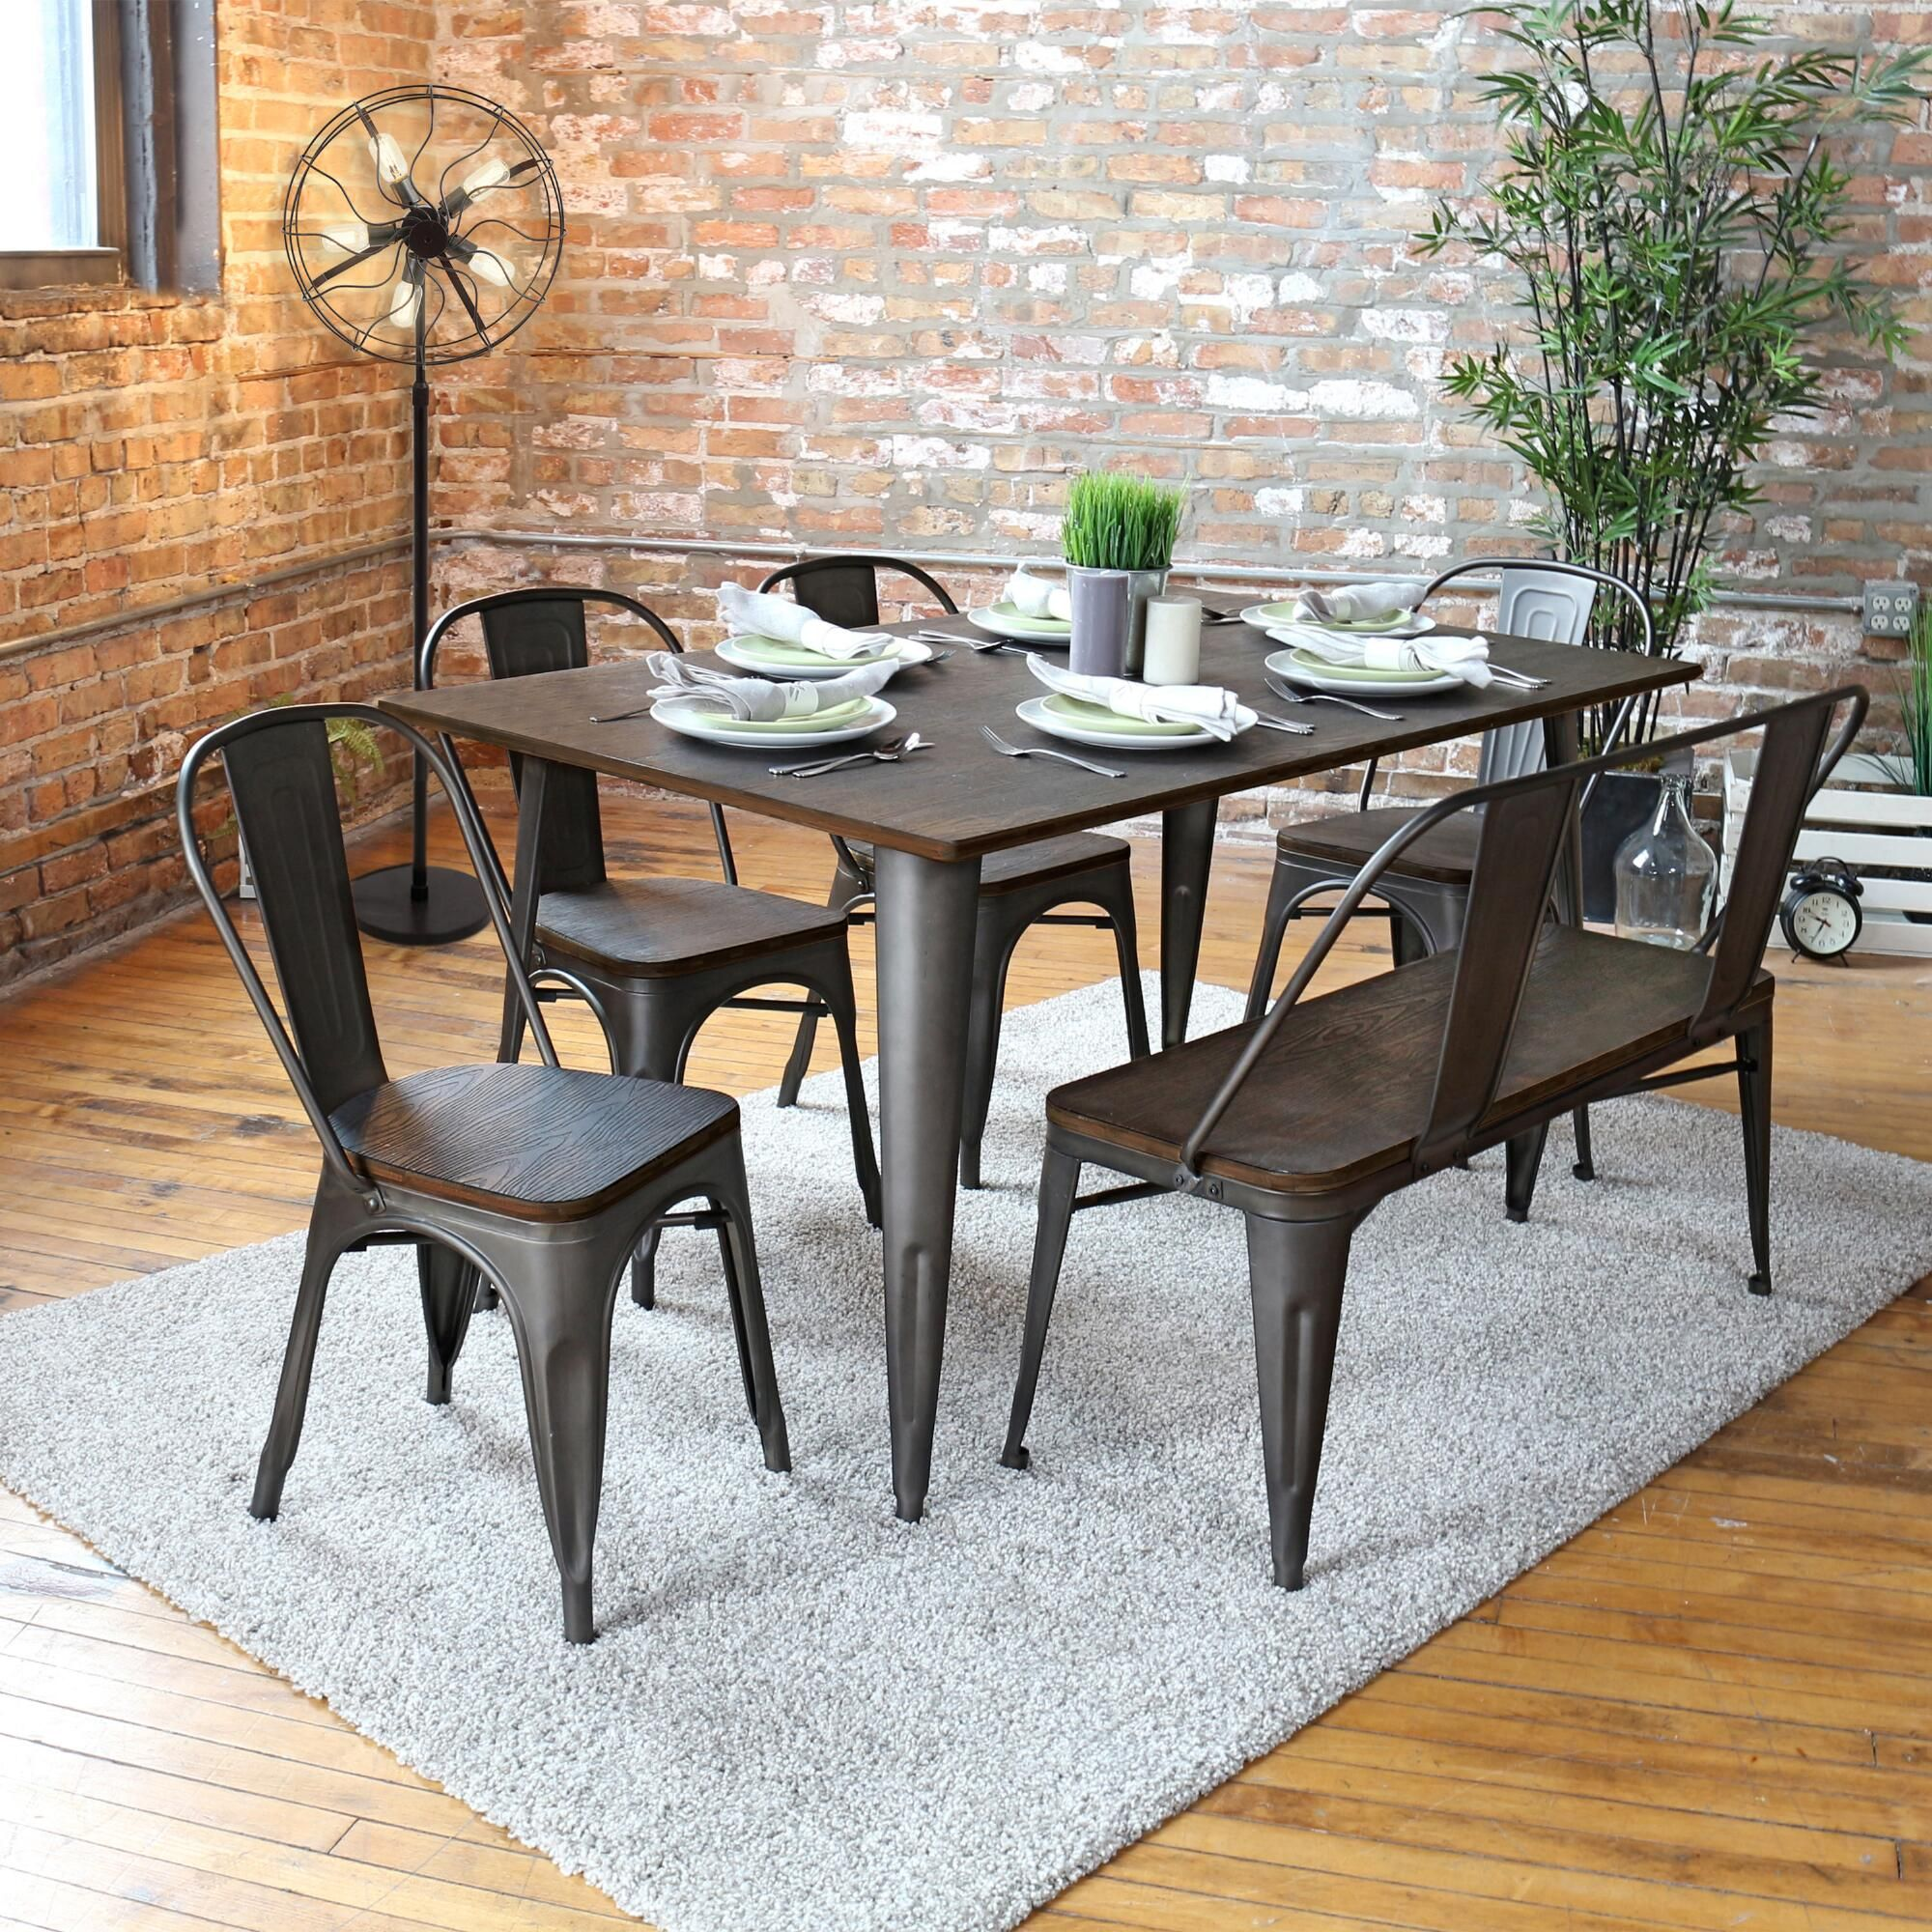 The Cool Industrial Styling Of Our Dining Collection Is Warmed Up With Beautiful Bamboo Details In A Ri With Images Dining Table Metal Dining Table Dining Table In Kitchen